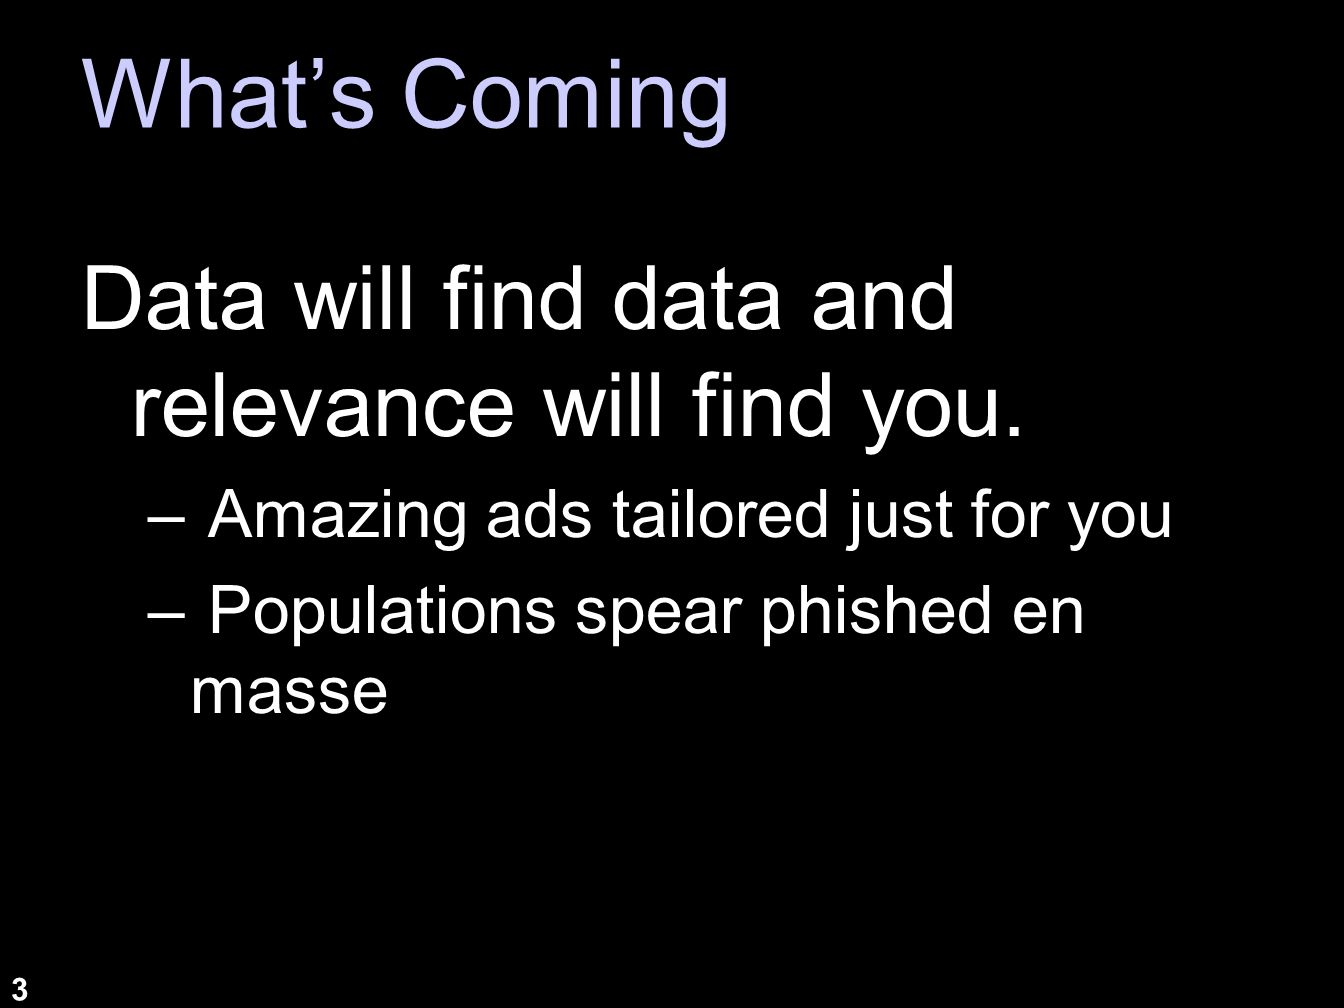 3 Whats Coming Data will find data and relevance will find you. – Amazing ads tailored just for you – Populations spear phished en masse